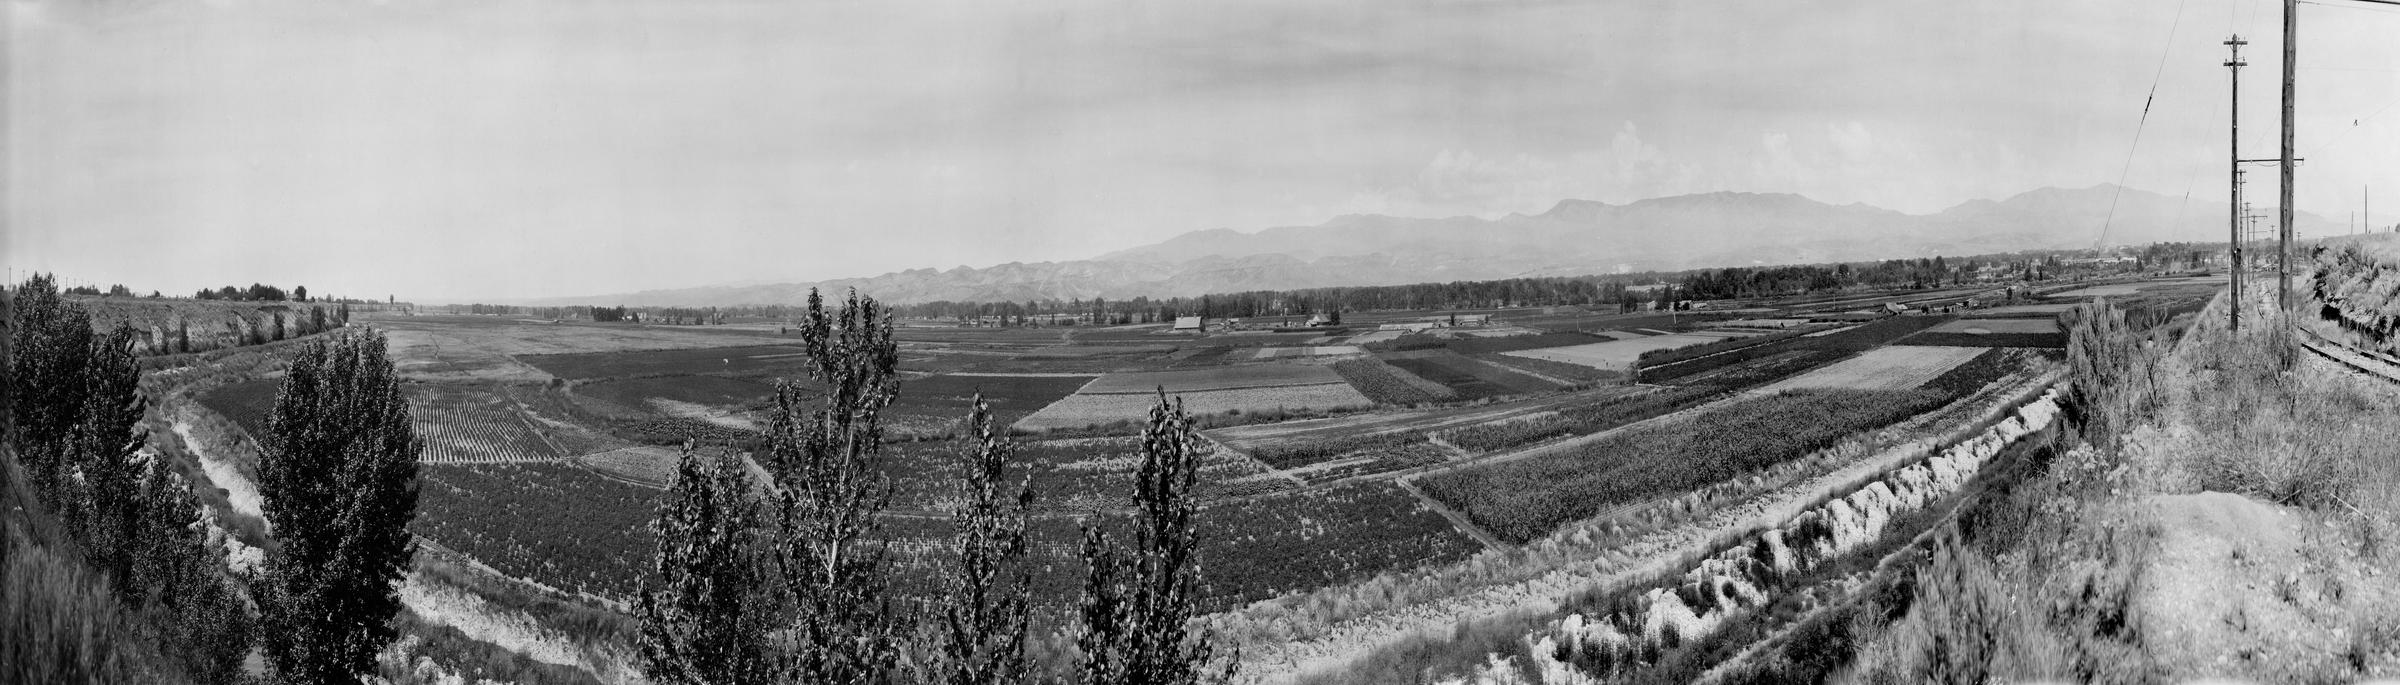 Growing Garden City A History Of Chinese Gardens Gambling And Change Boise State Public Radio